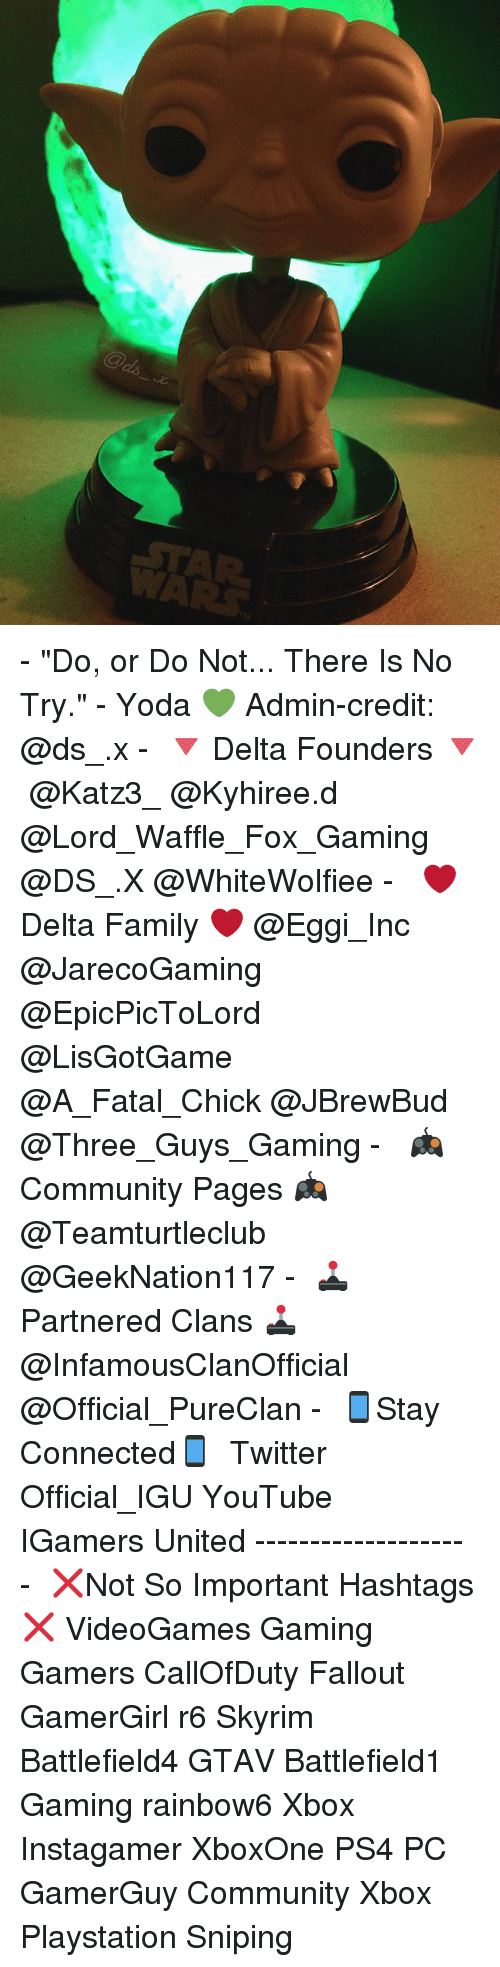 """no try yoda: - """"Do, or Do Not... There Is No Try."""" - Yoda 💚 Admin-credit: @ds_.x - ↡🔻 Delta Founders 🔻↡ @Katz3_ @Kyhiree.d @Lord_Waffle_Fox_Gaming @DS_.X @WhiteWolfiee - ↡ ❤ Delta Family ❤↡ @Eggi_Inc @JarecoGaming @EpicPicToLord @LisGotGame @A_Fatal_Chick @JBrewBud @Three_Guys_Gaming - ↡ 🎮Community Pages 🎮↡ @Teamturtleclub @GeekNation117 - ↡🕹Partnered Clans 🕹↡ @InfamousClanOfficial @Official_PureClan - ↡📱Stay Connected📱 ↡ Twitter ↠ Official_IGU YouTube ↠ IGamers United ✁-------------------- ↡❌Not So Important Hashtags❌↡ VideoGames Gaming Gamers CallOfDuty Fallout GamerGirl r6 Skyrim Battlefield4 GTAV Battlefield1 Gaming rainbow6 Xbox Instagamer XboxOne PS4 PC GamerGuy Community Xbox Playstation Sniping"""